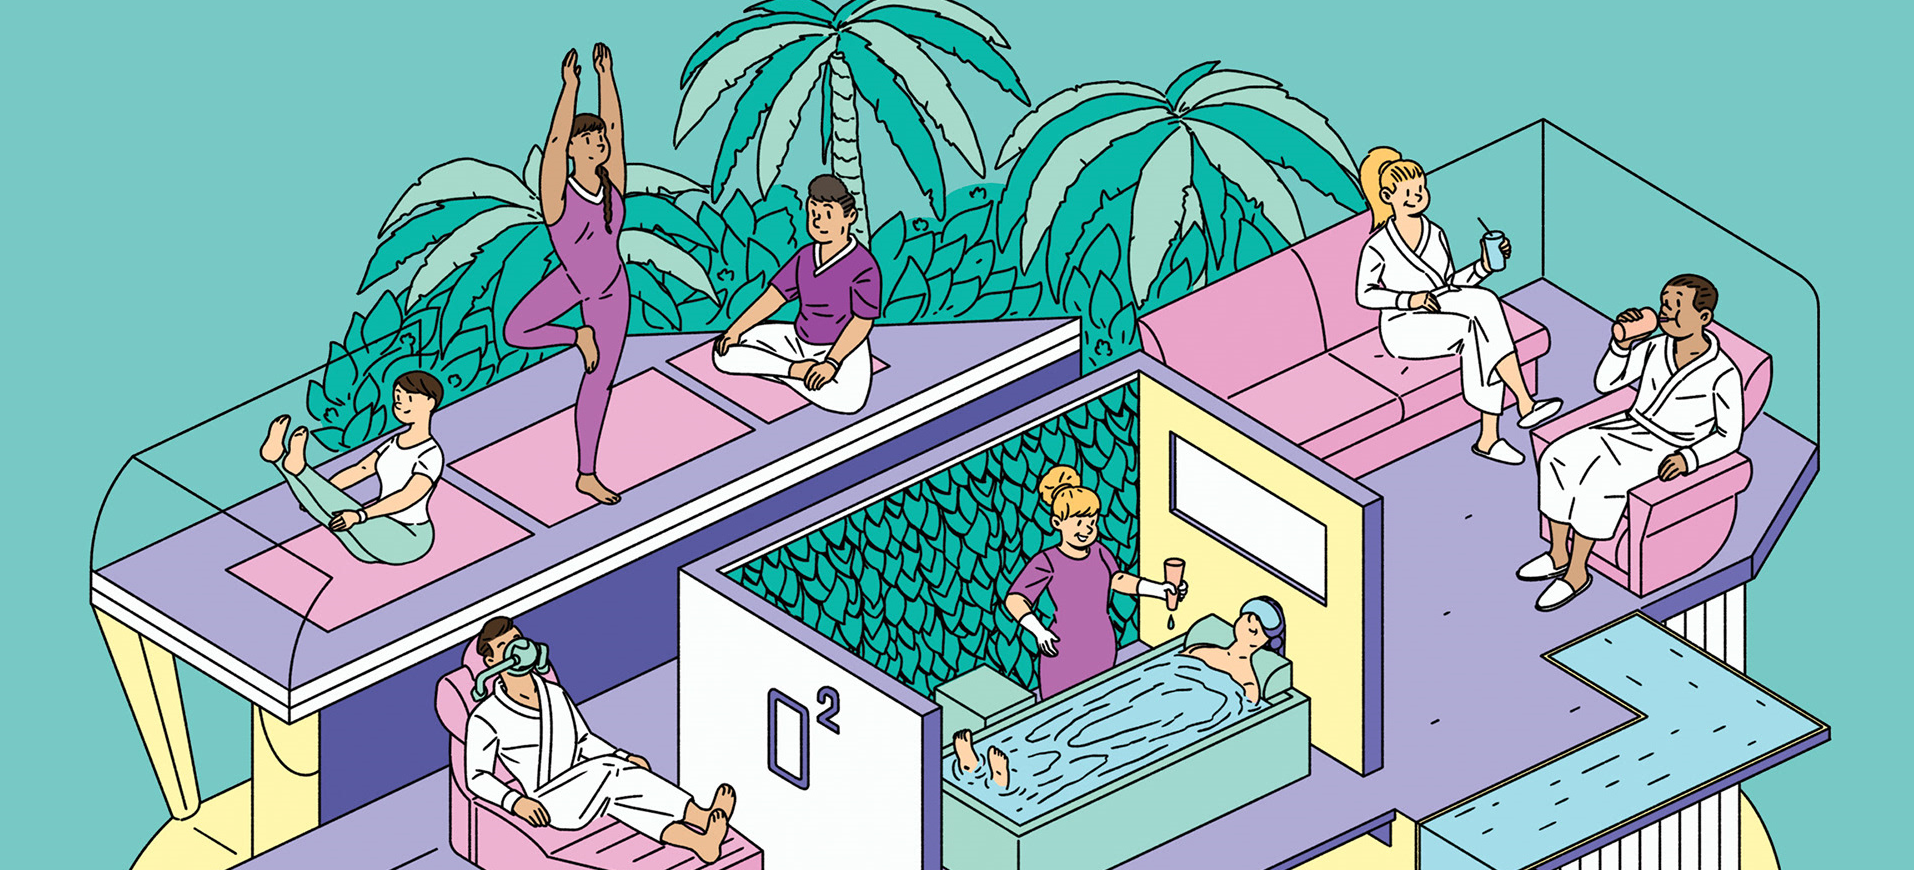 Your Guide to Beauty & Spa Logos and Branding in 2019